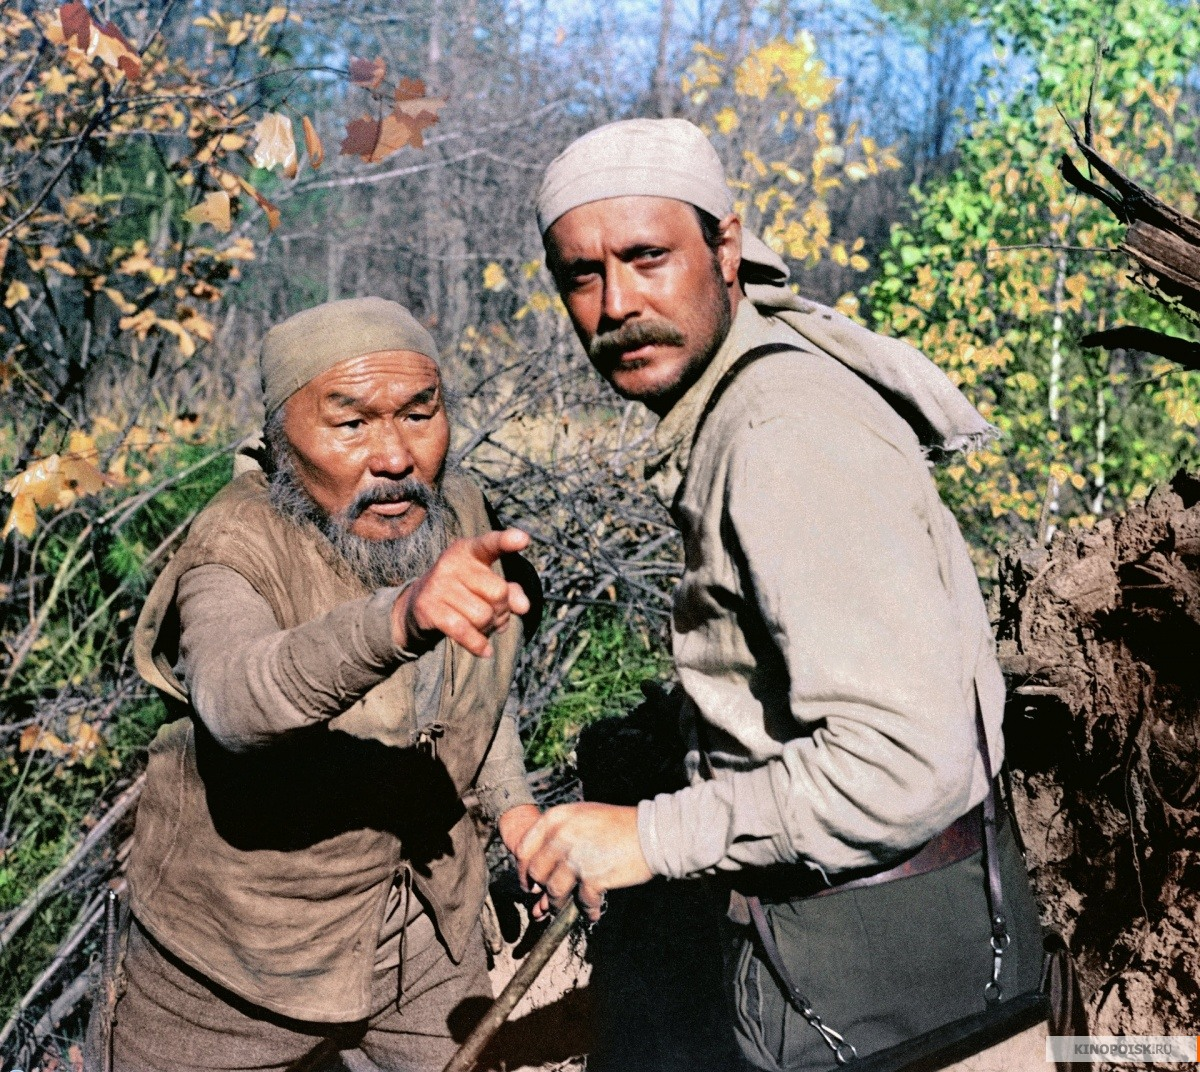 A scene from 'Dersu Uzala'.